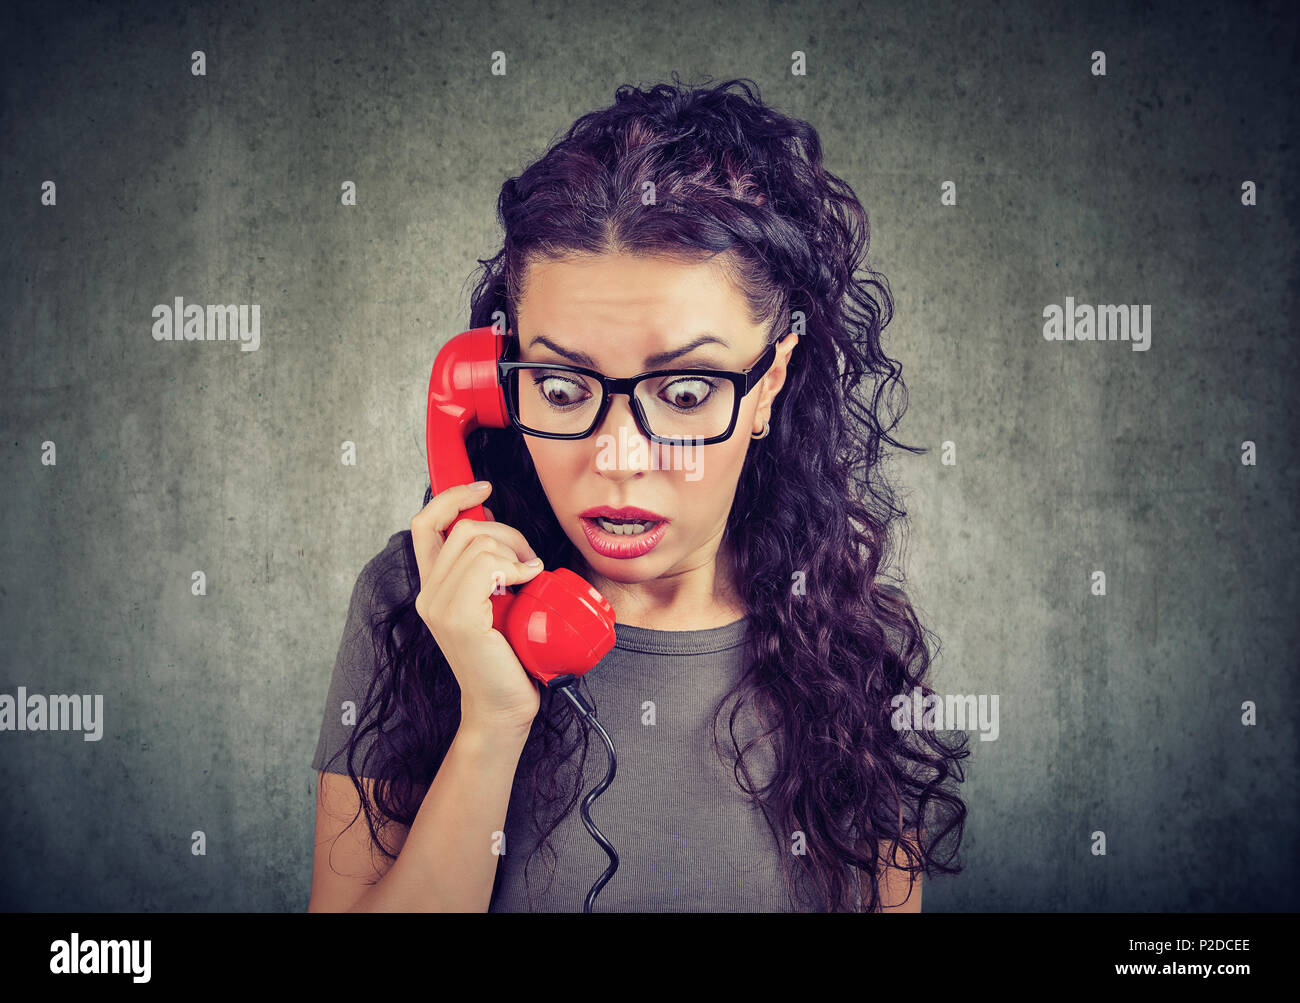 Young brunette in glasses receiving bad news and looking stunned while speaking on phone - Stock Image